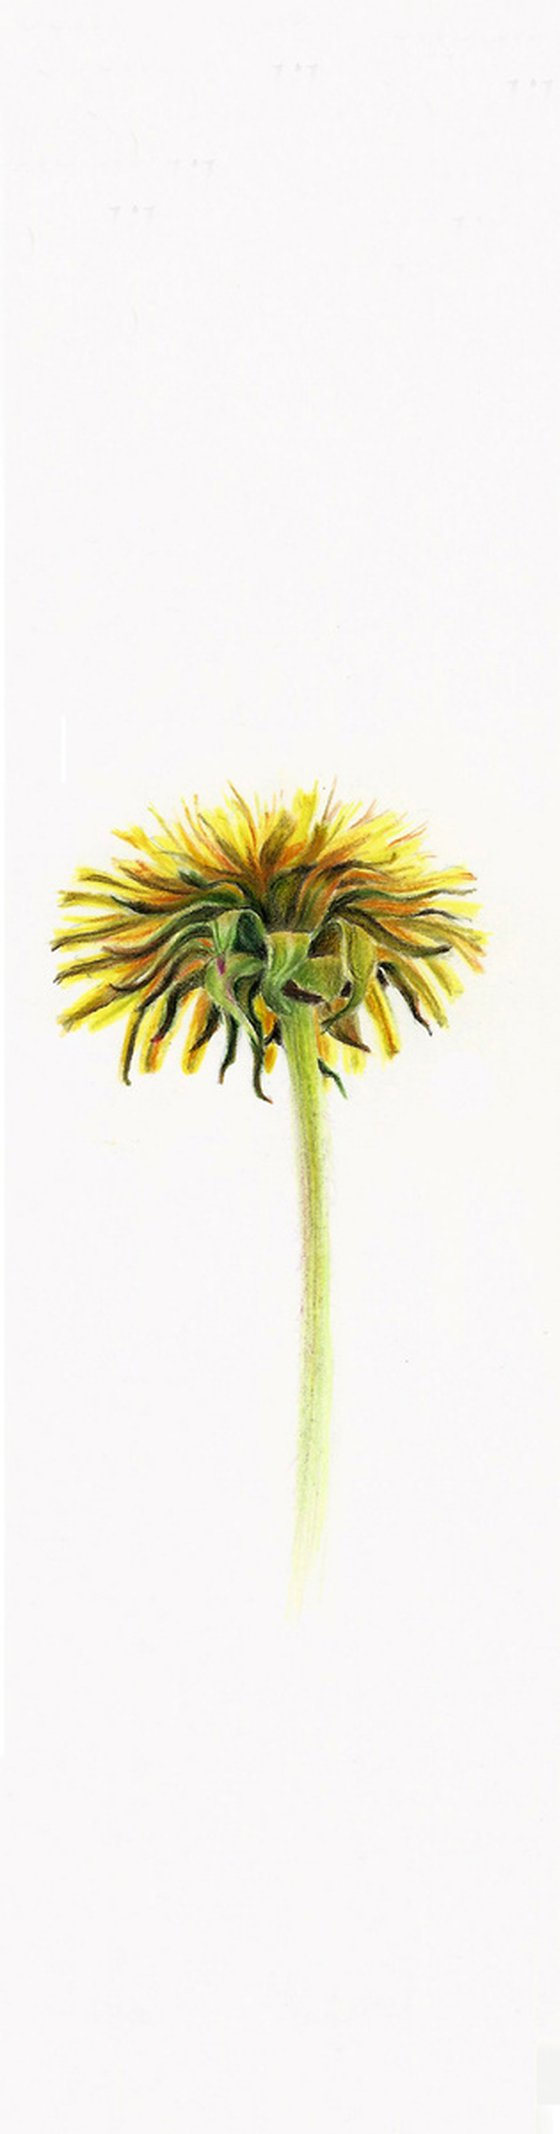 Dandelion - from my Wildflowers Bookmarks Collection